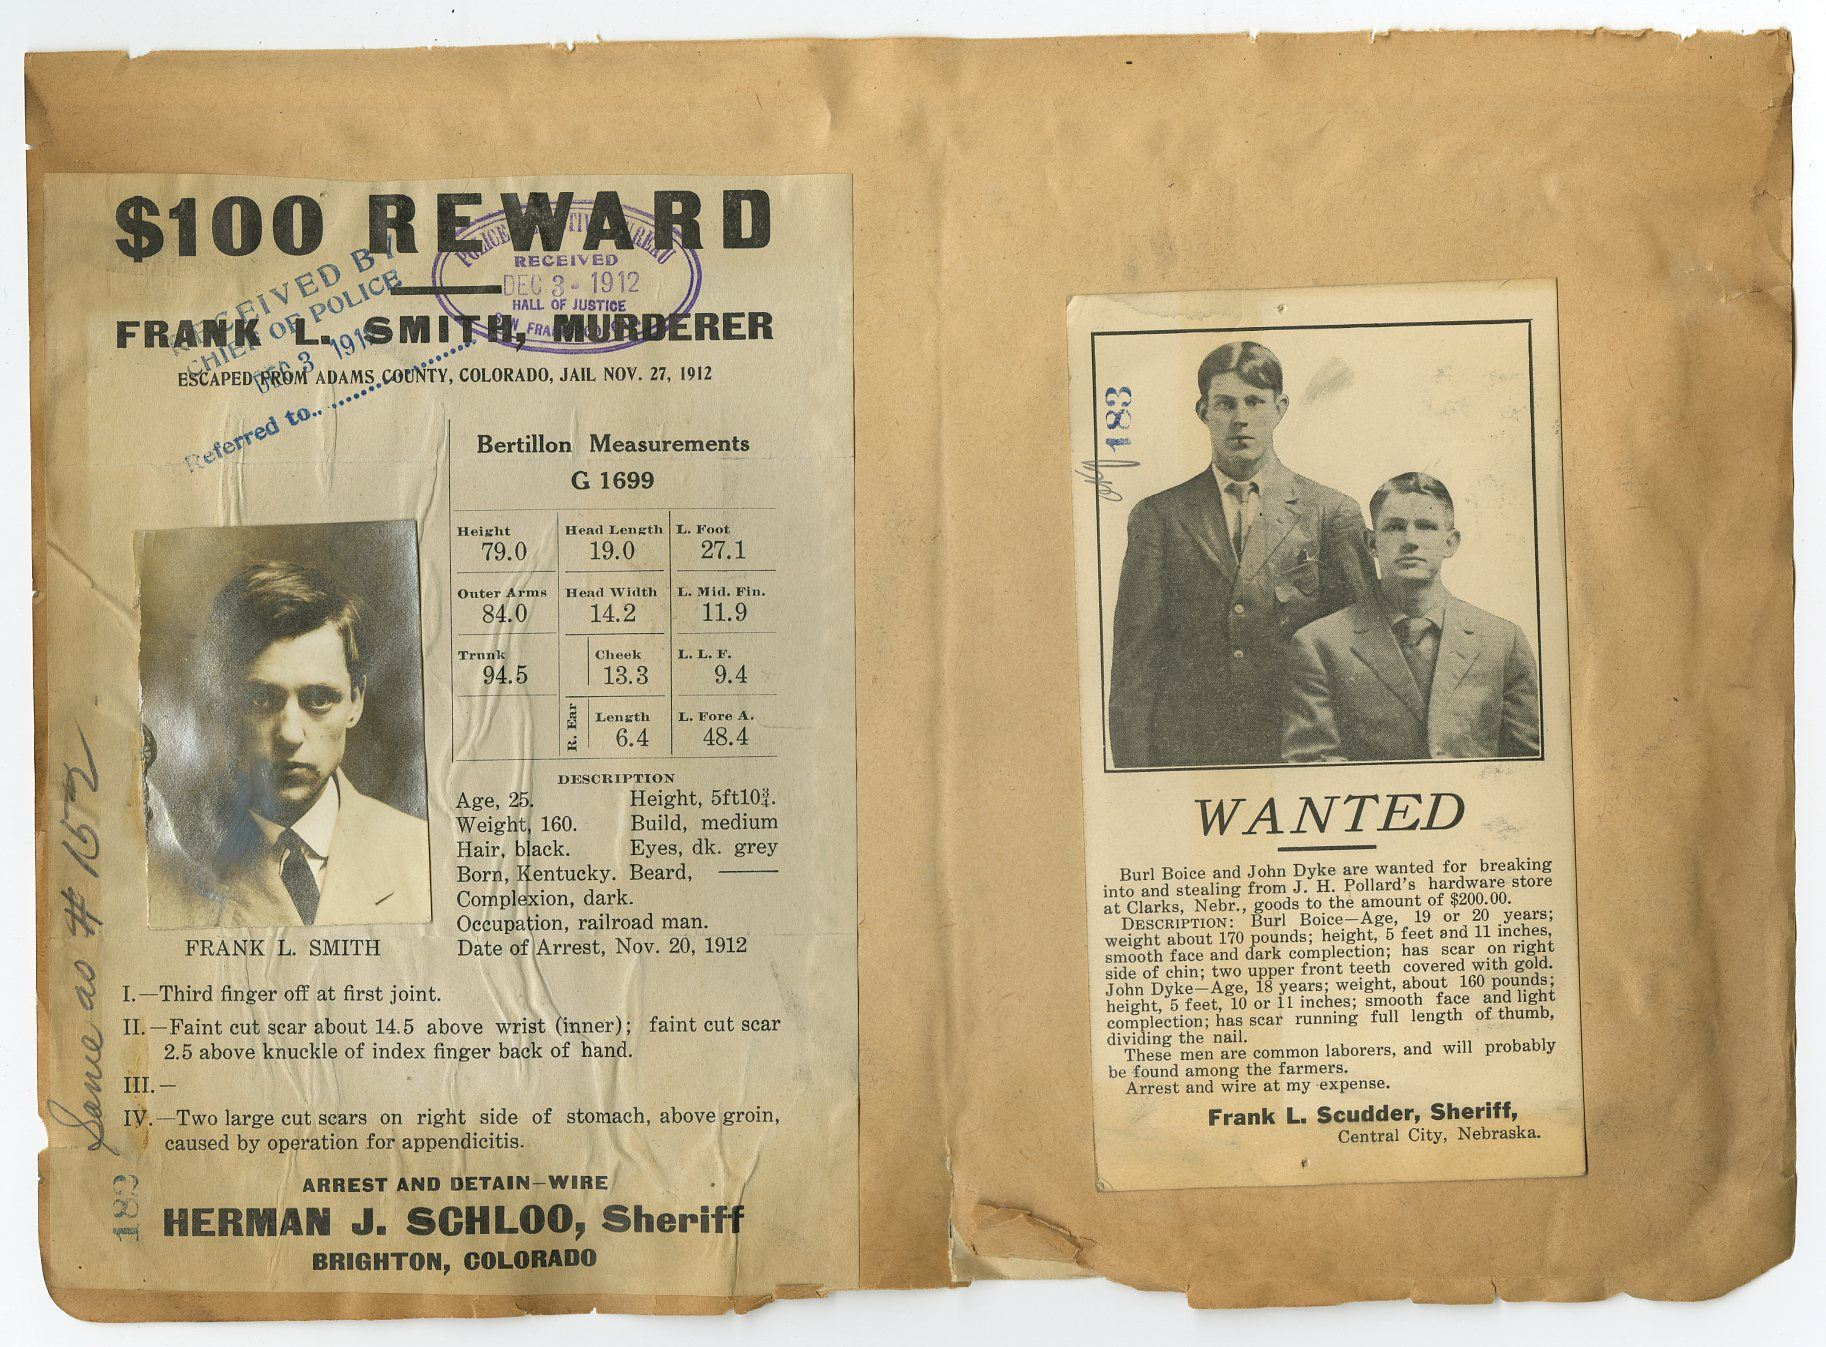 Wanted Notices